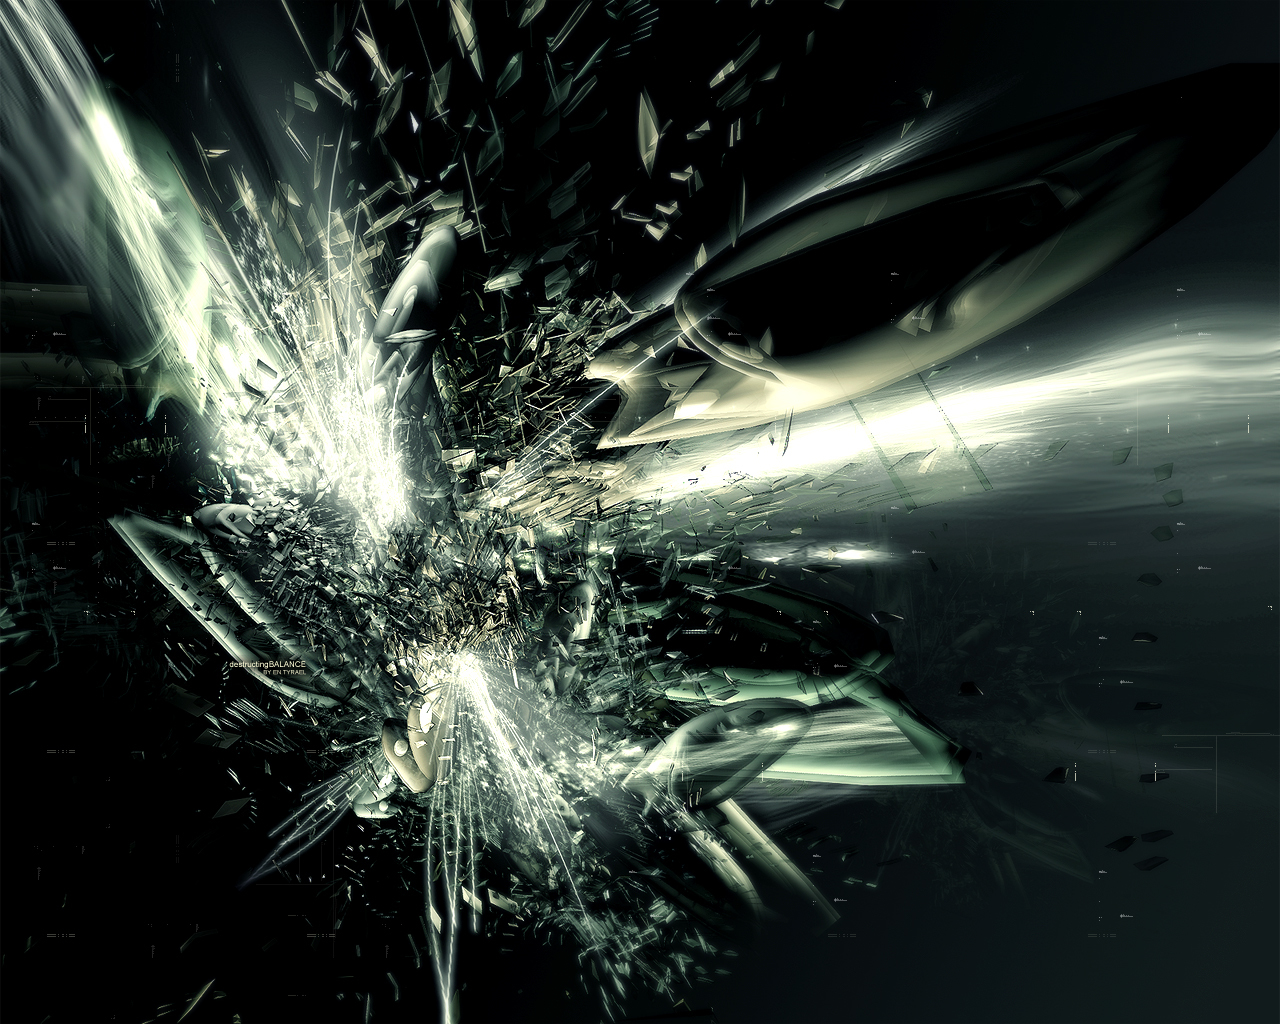 destructing balance abstract HD Wallpaper